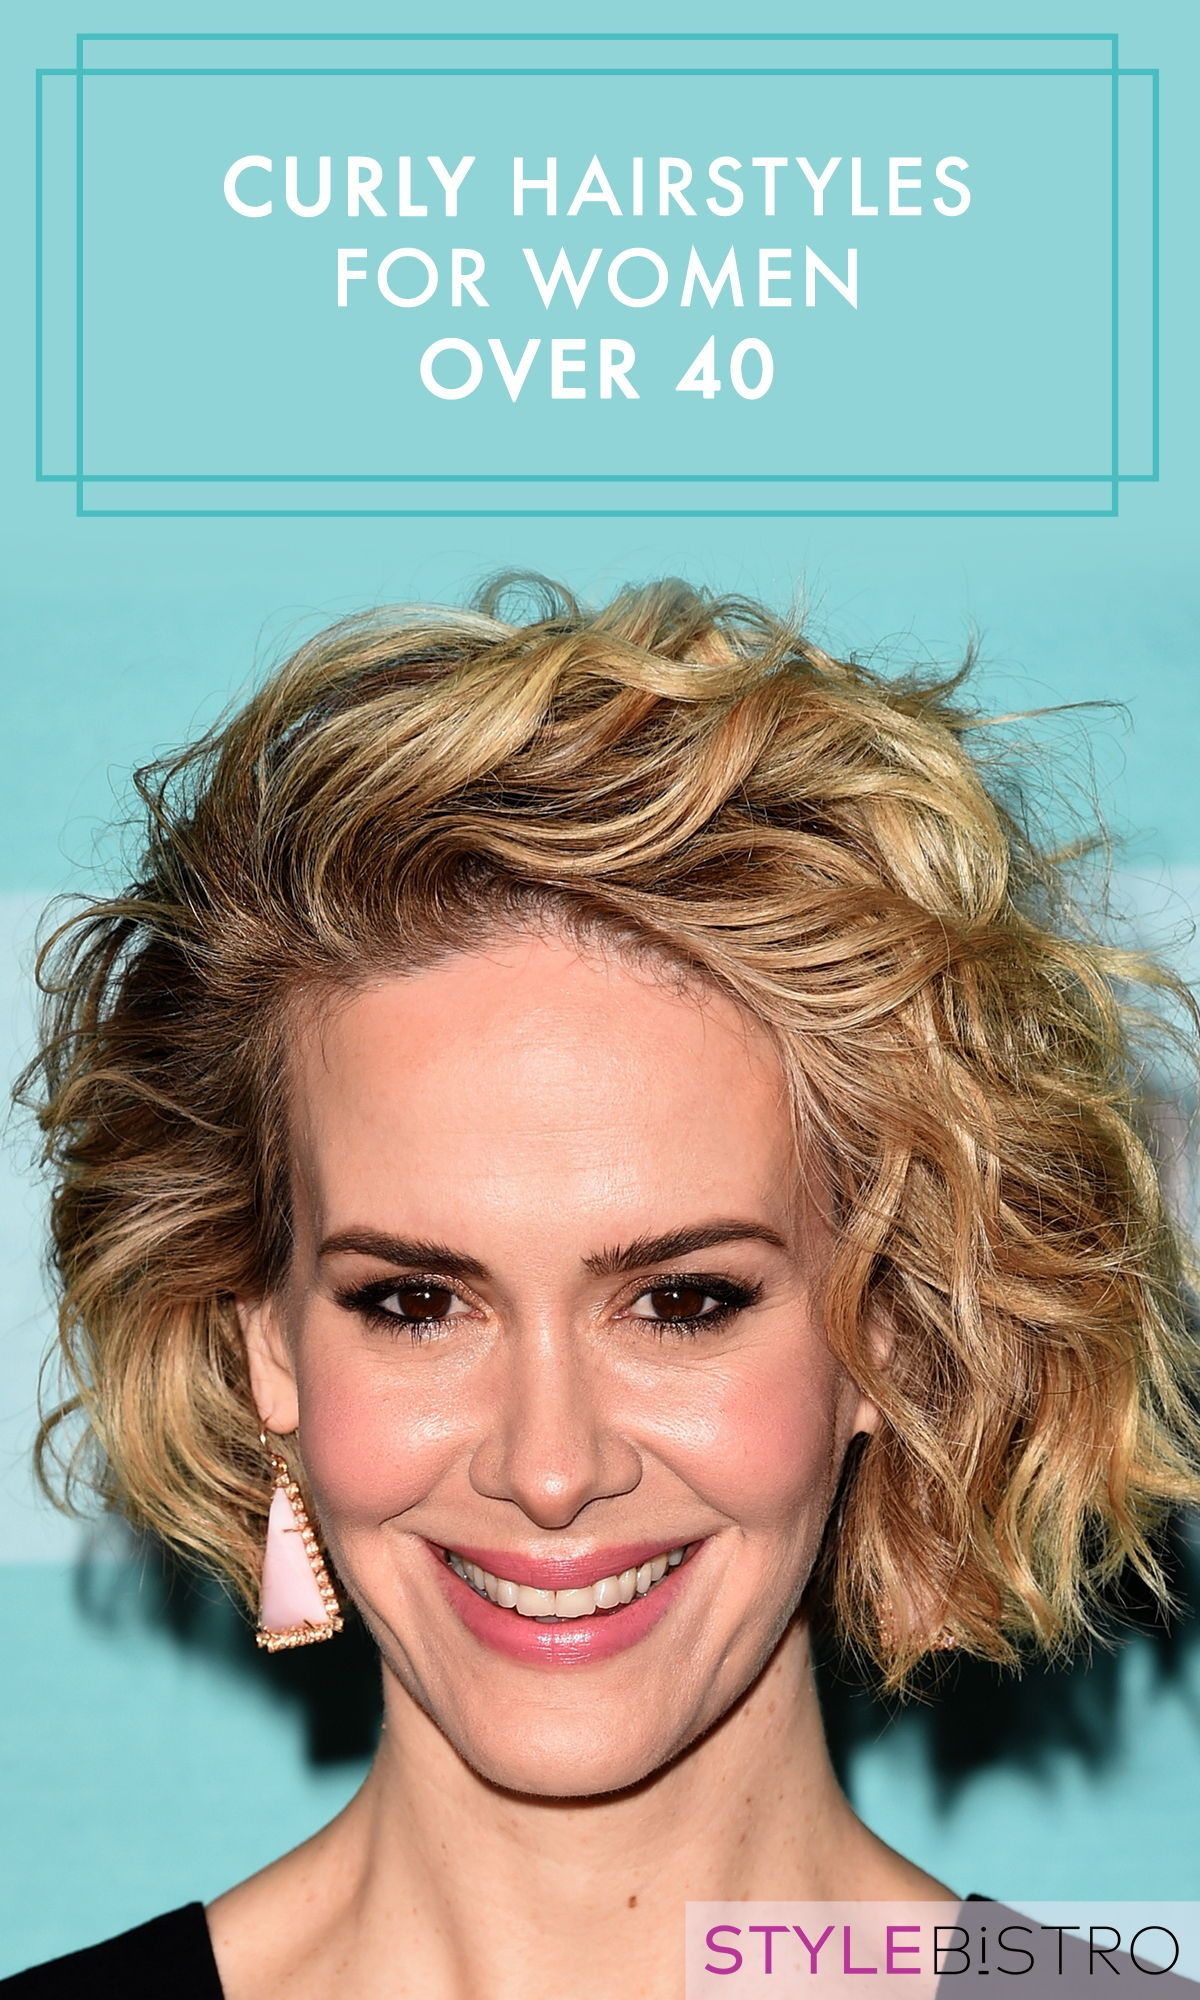 Hairstyles For Women Over 40 With Curly Hair Curly Hair Styles Curly Hair Styles Naturally Curly Hair Photos